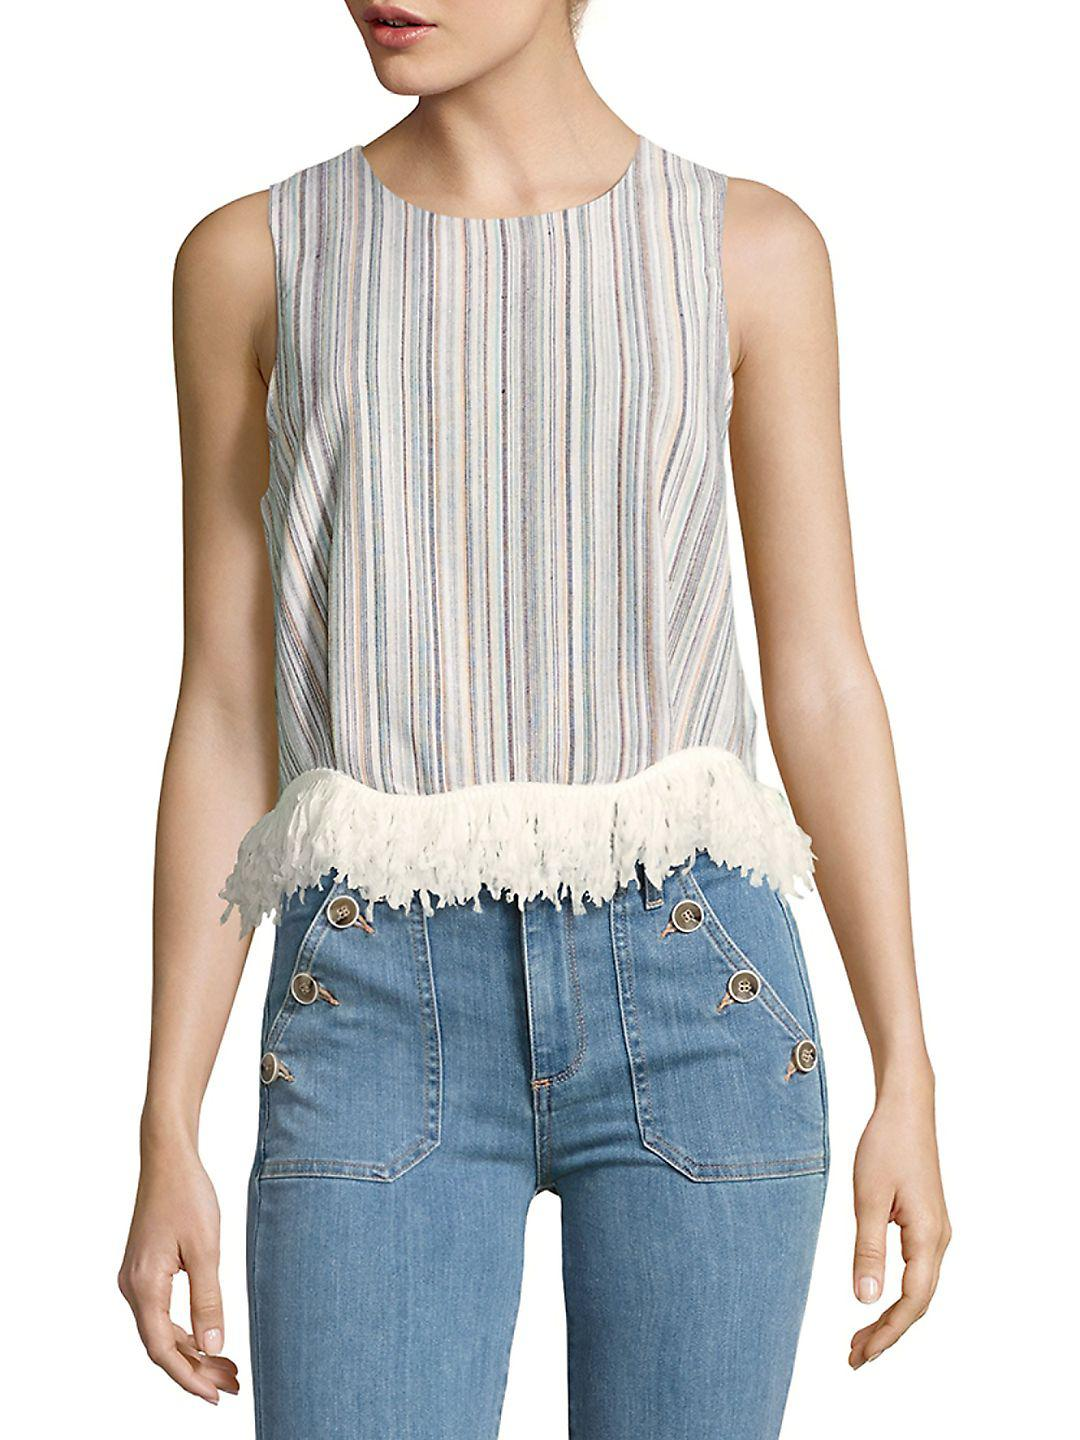 eeaf24cfdb7ba Lyst - Lucca Couture Fringe Shell Top in Blue